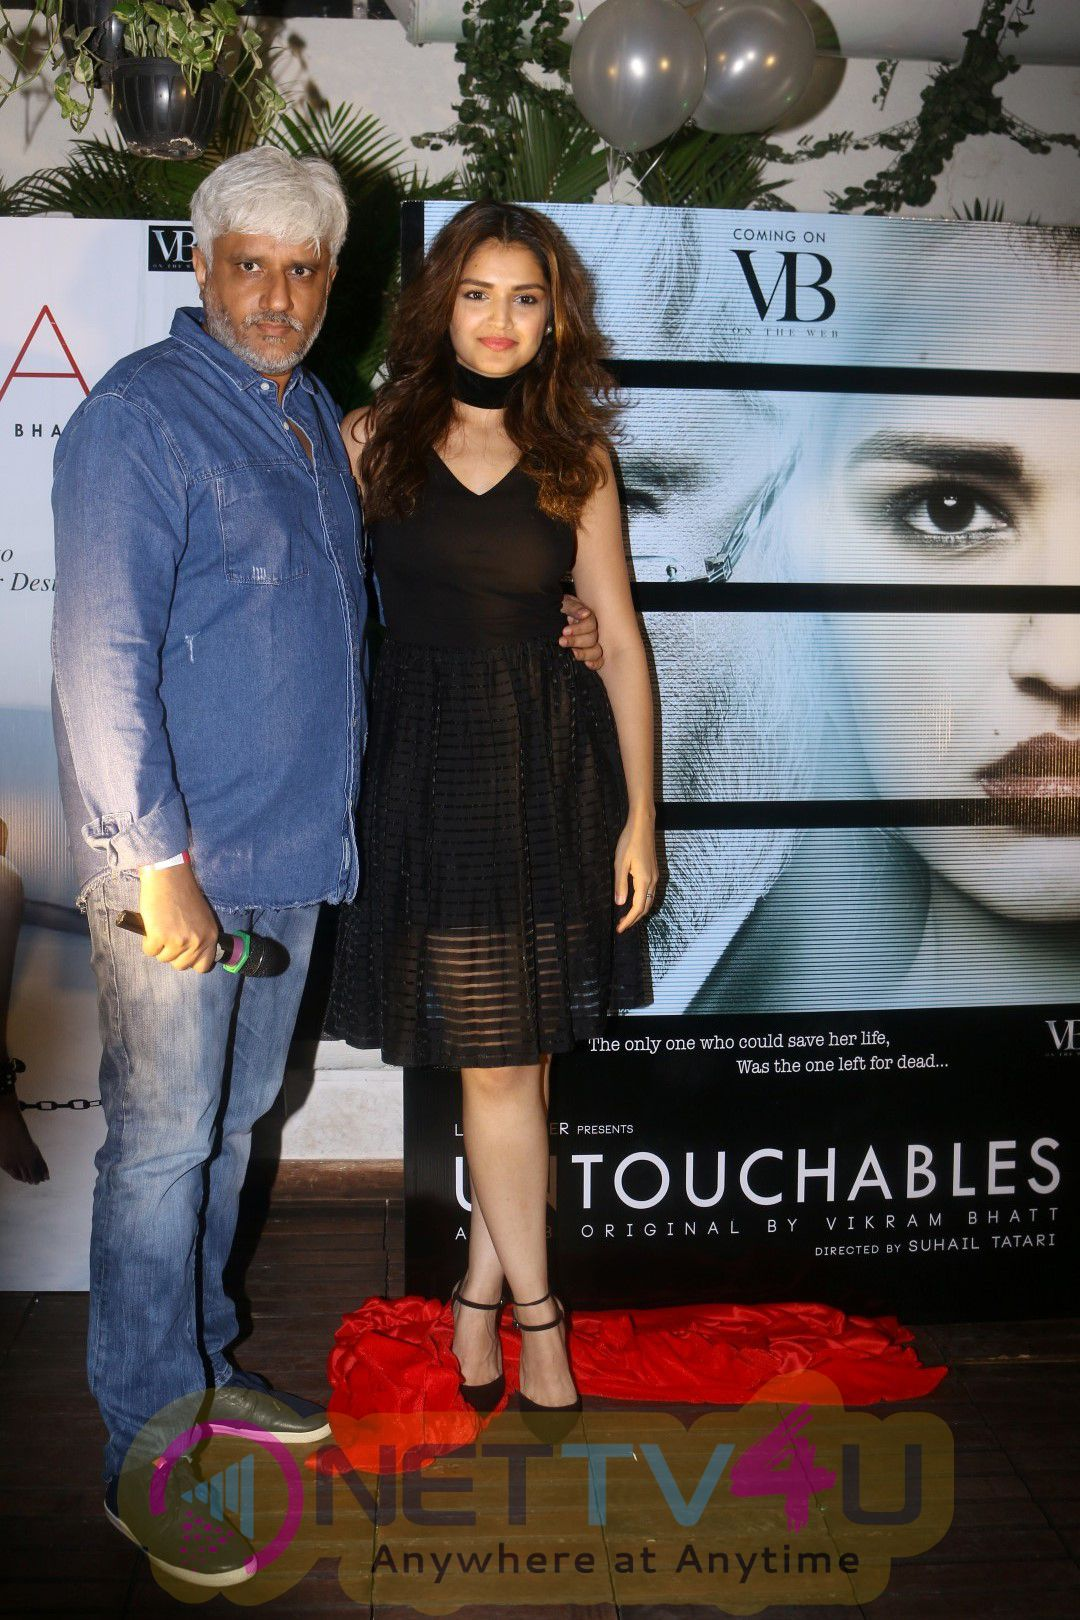 Launch Of VB On Web With Vikram Bhatt & Many Others Photos